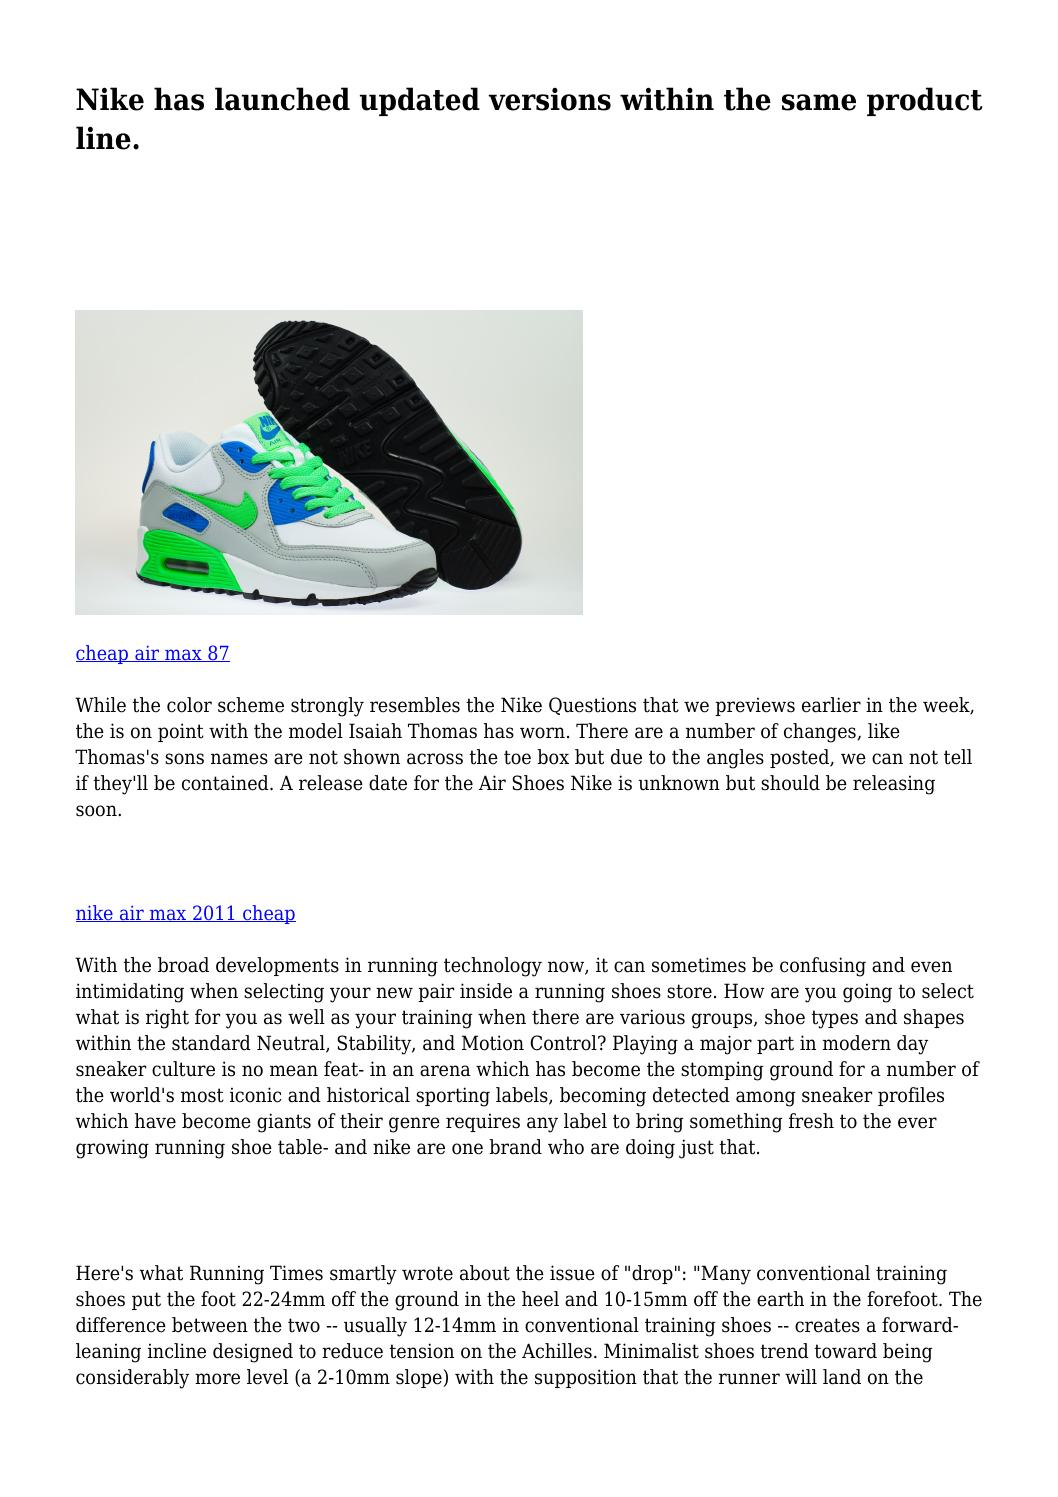 arbusto Mendigar oxígeno  Nike has launched updated versions within the same product line. by  utopiantorpor2003 - issuu